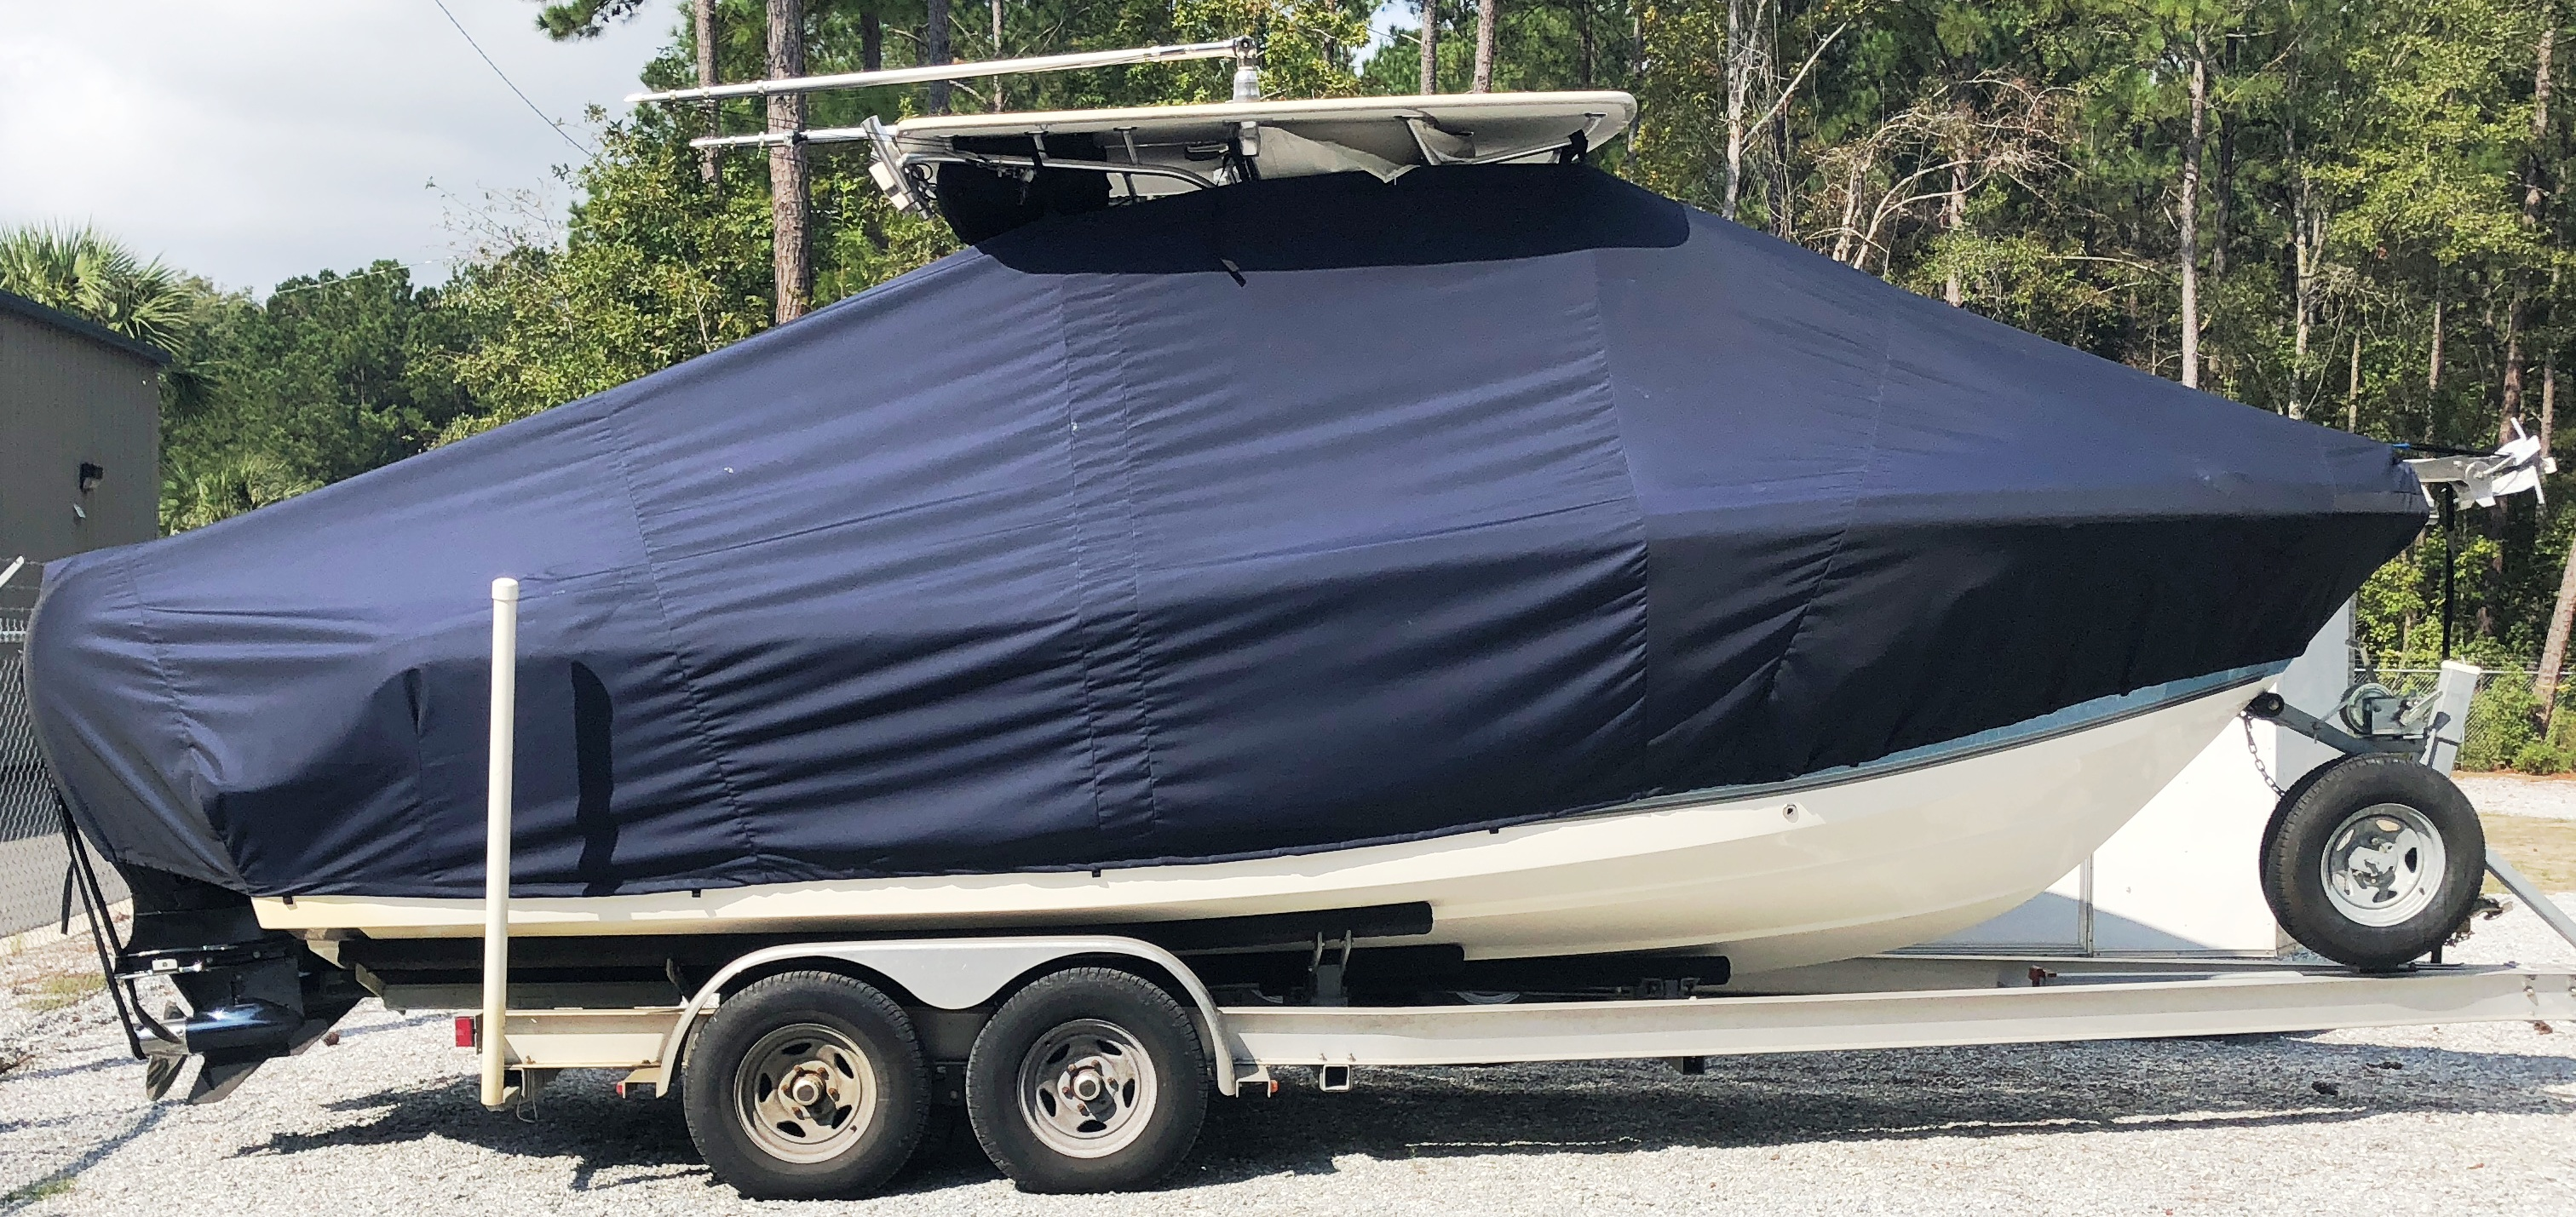 Mako 234cc, 20xx, TTopCovers™ T-Top boat cover, starboard side